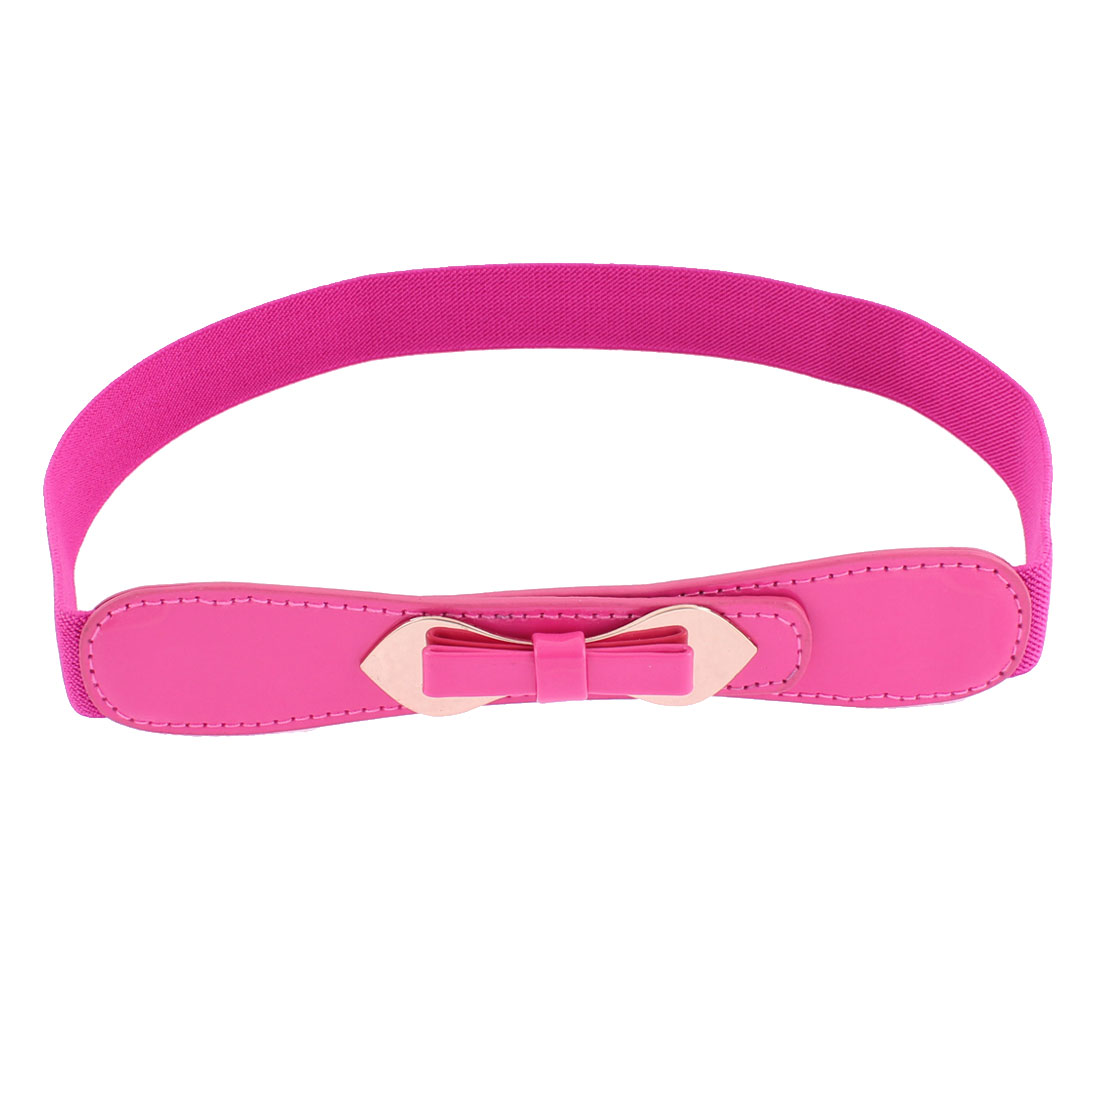 Double Pin Buckle Adjustable Elastic Waistband Waist Belt Fuschia